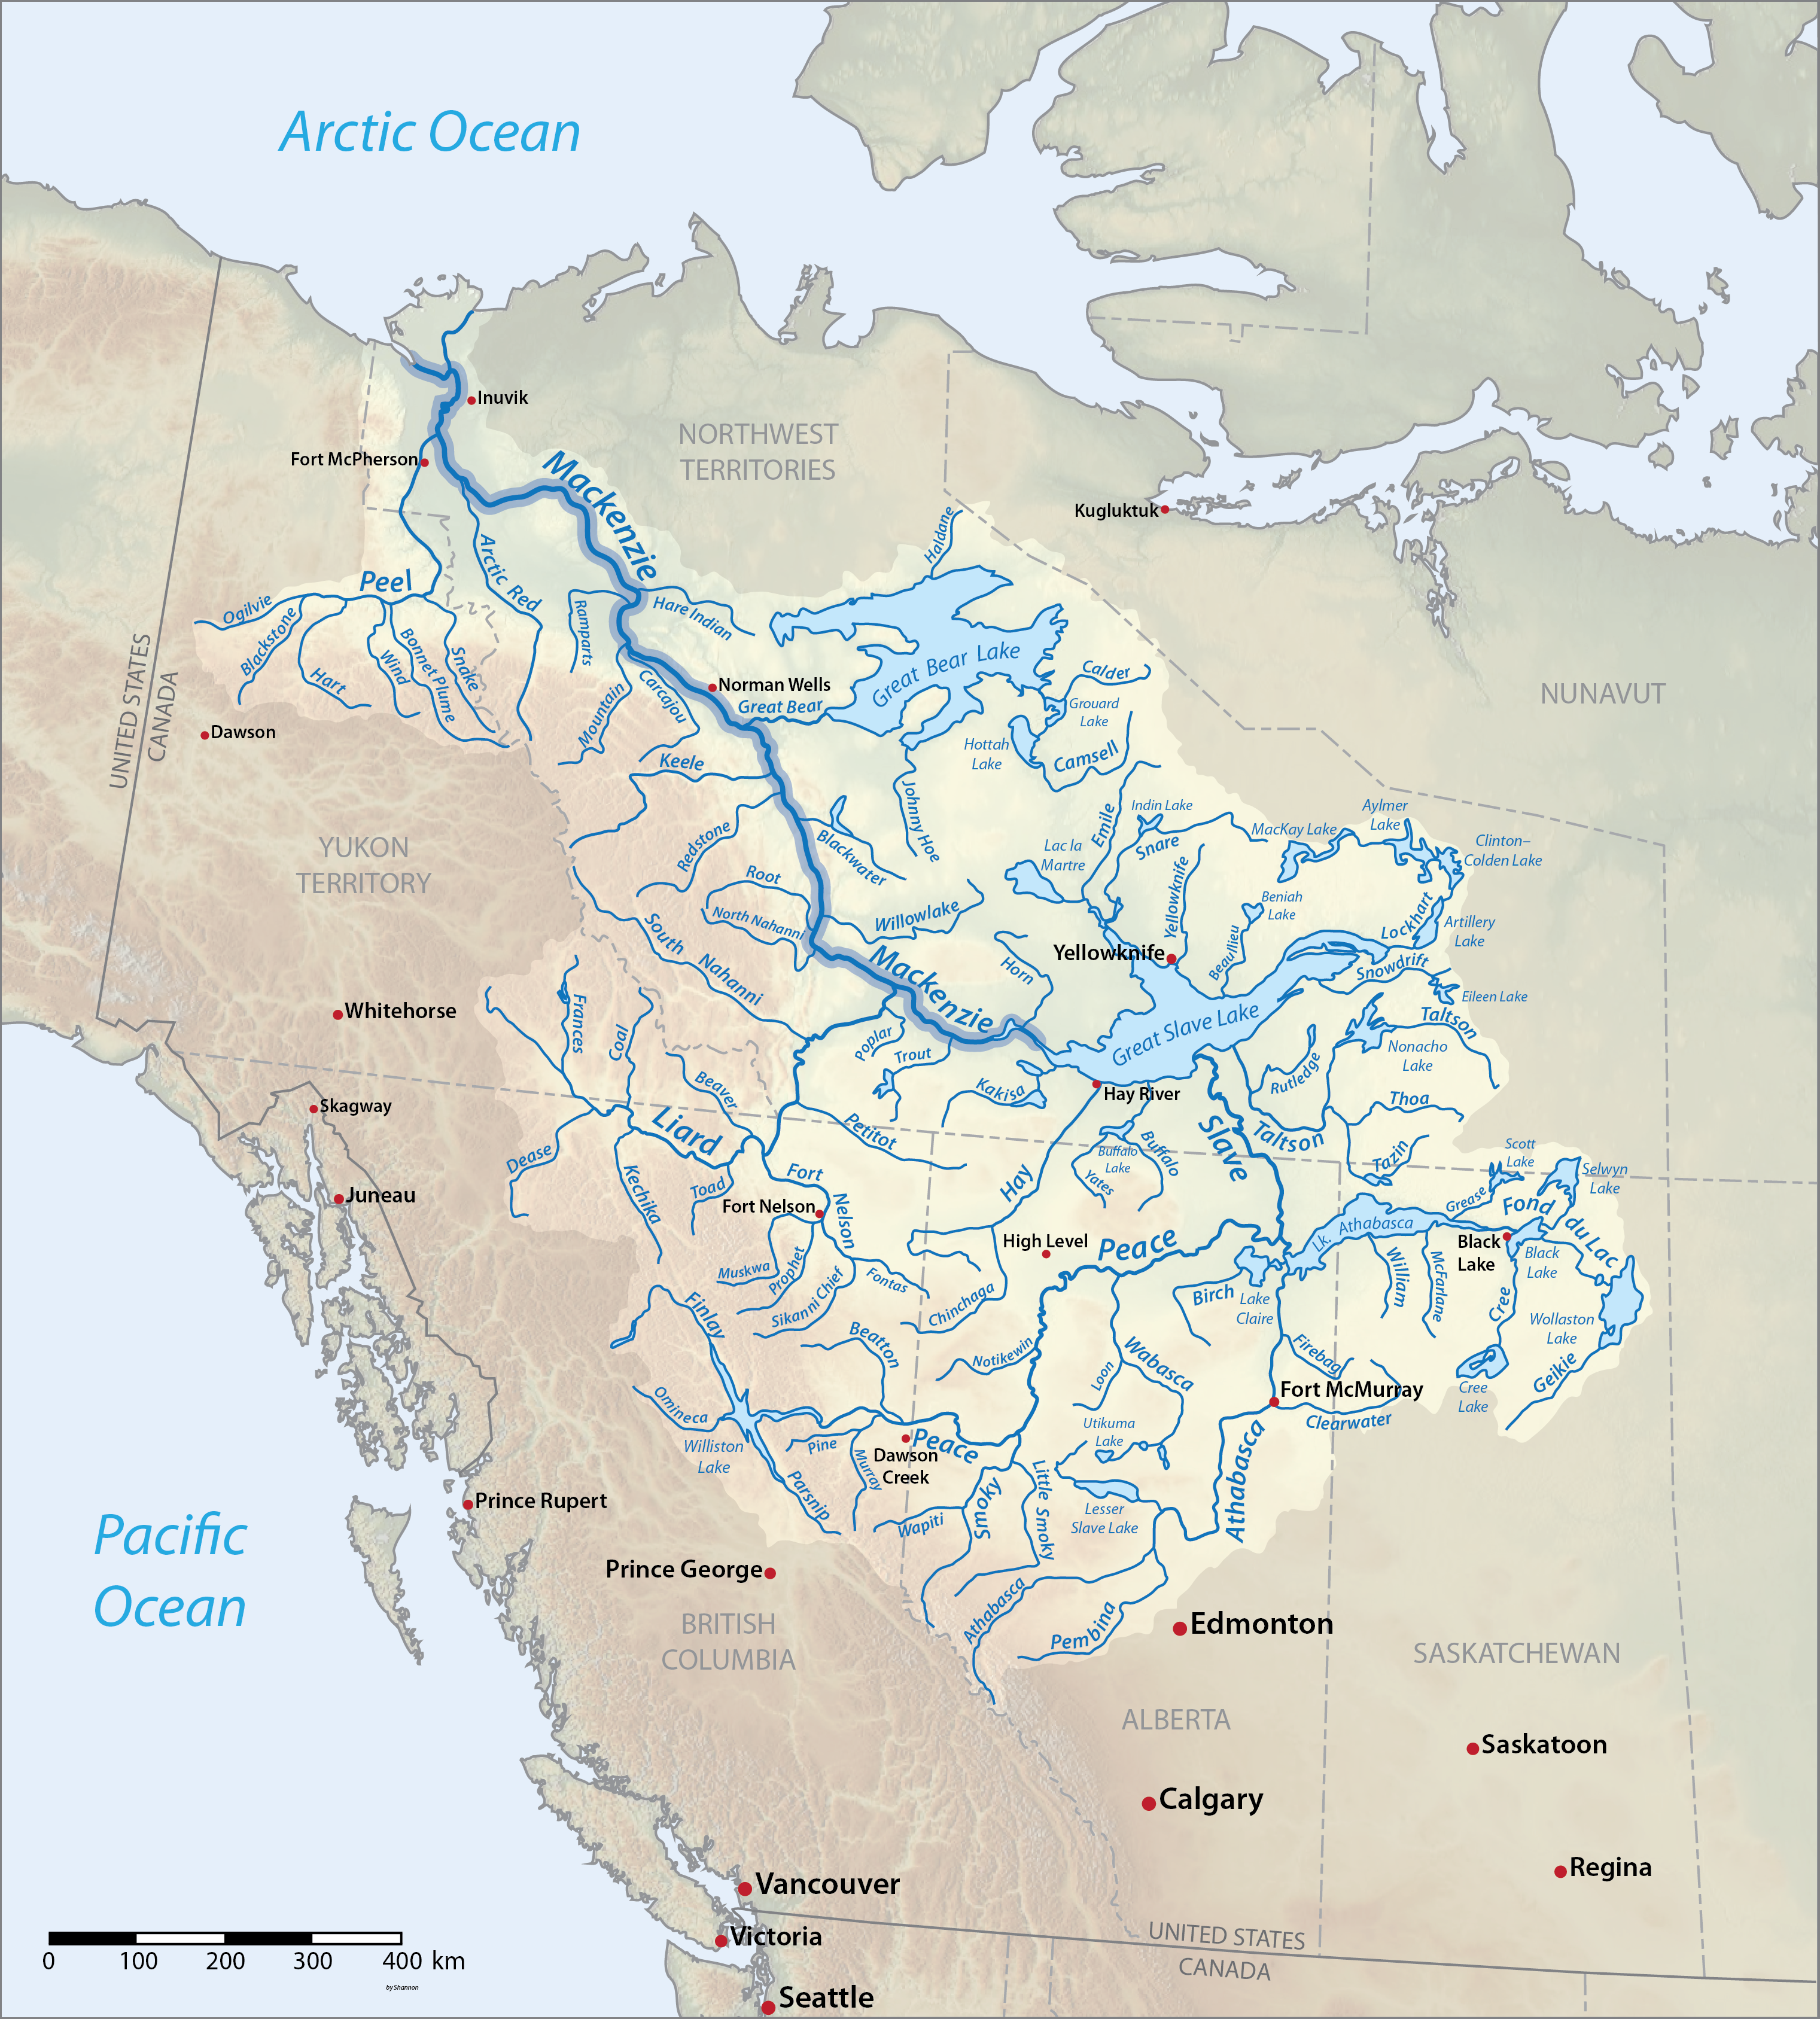 Pin canadian national railroad map on pinterest - Map Of Mackenzie Watershed Including Tributaries And Major Lakes Northwest Territories Canada Maps Cartographic Material Pinterest